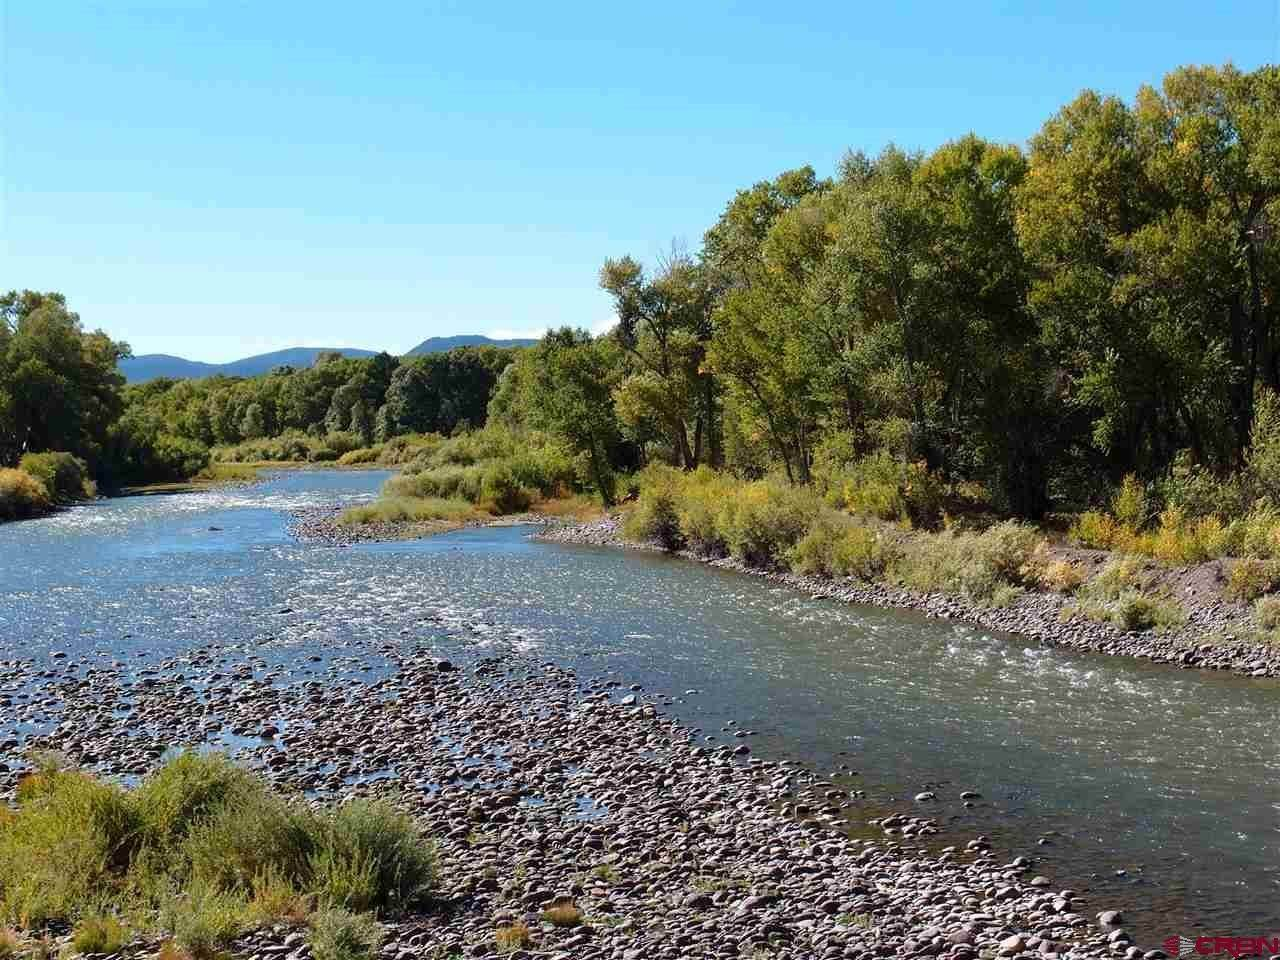 Farm and Ranch Properties for Sale at County Road 15 Del Norte, Colorado 81132 United States